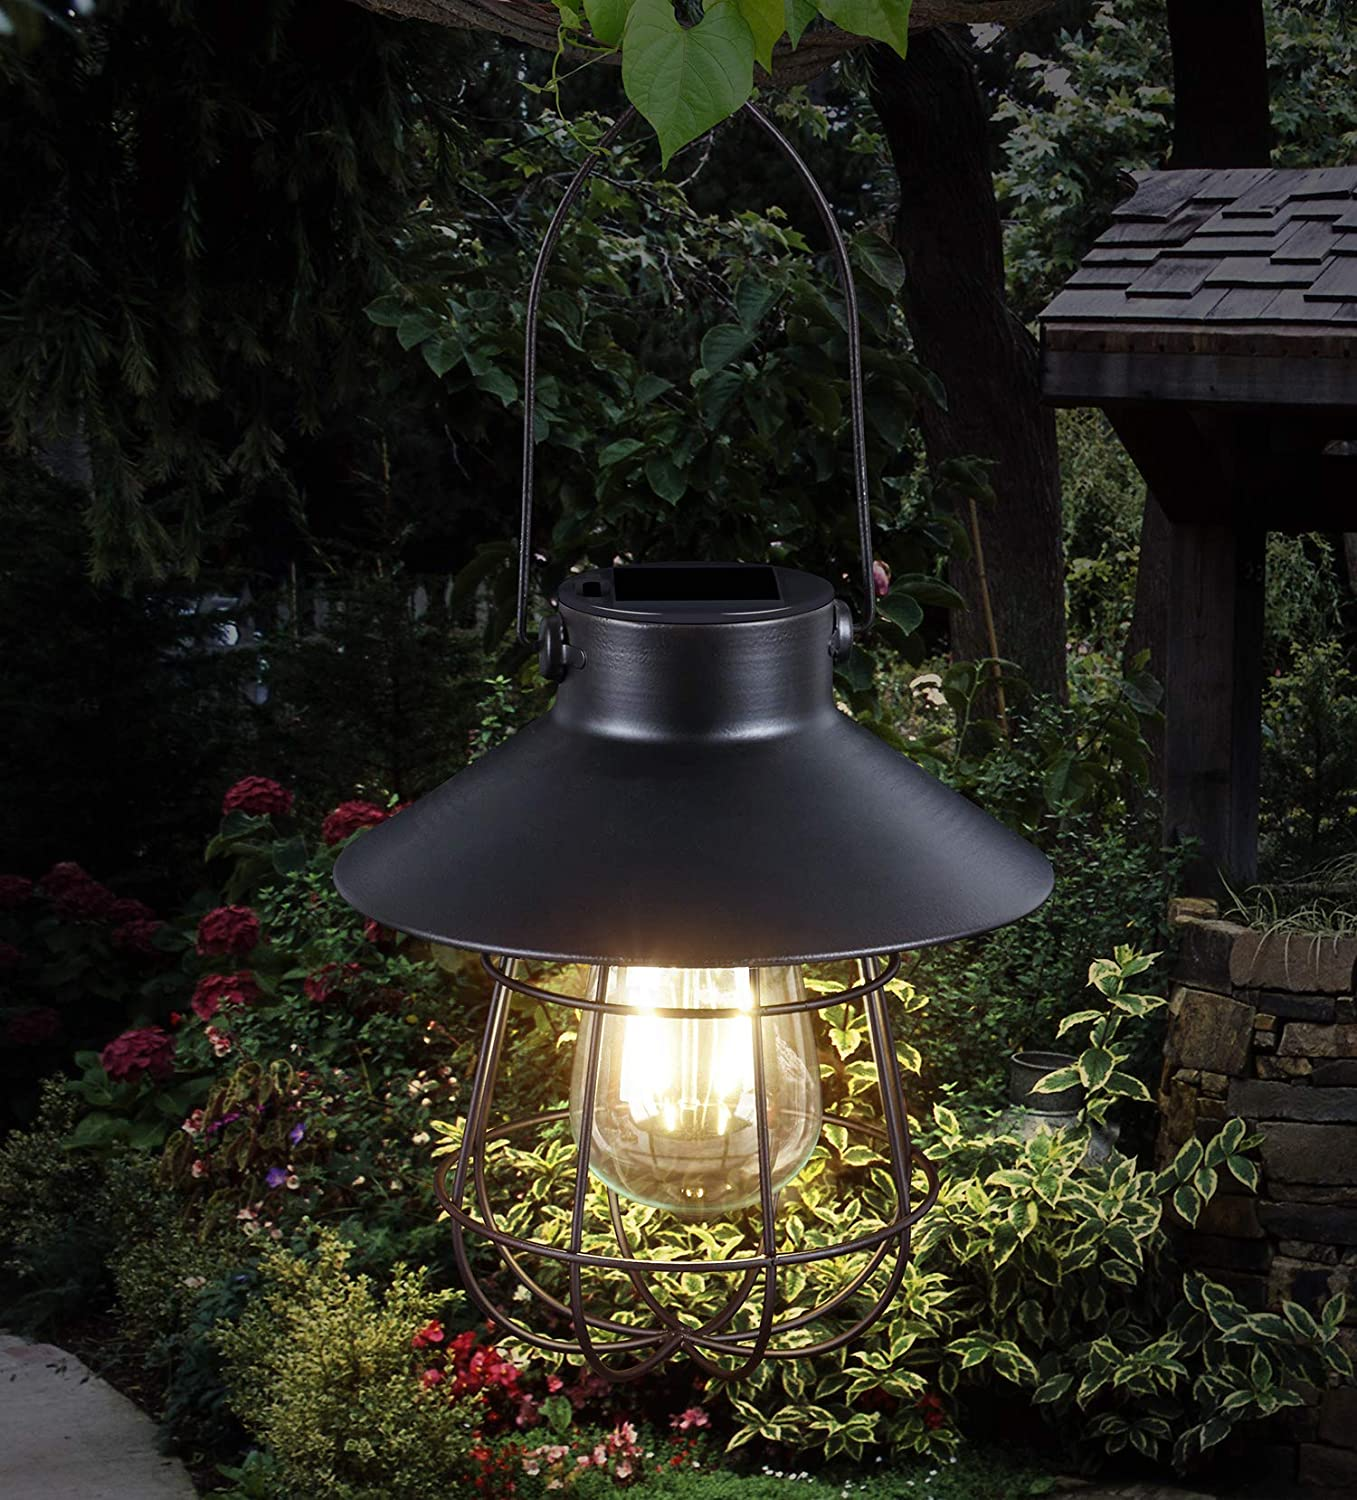 Hanging Solar Lights Outdoor -Vintage Solar Powered Lantern Waterproof Retro Solar Lamps with Warm Light Edison Bulb for Patio,Yard,Garden and Pathway Decoration(Black)